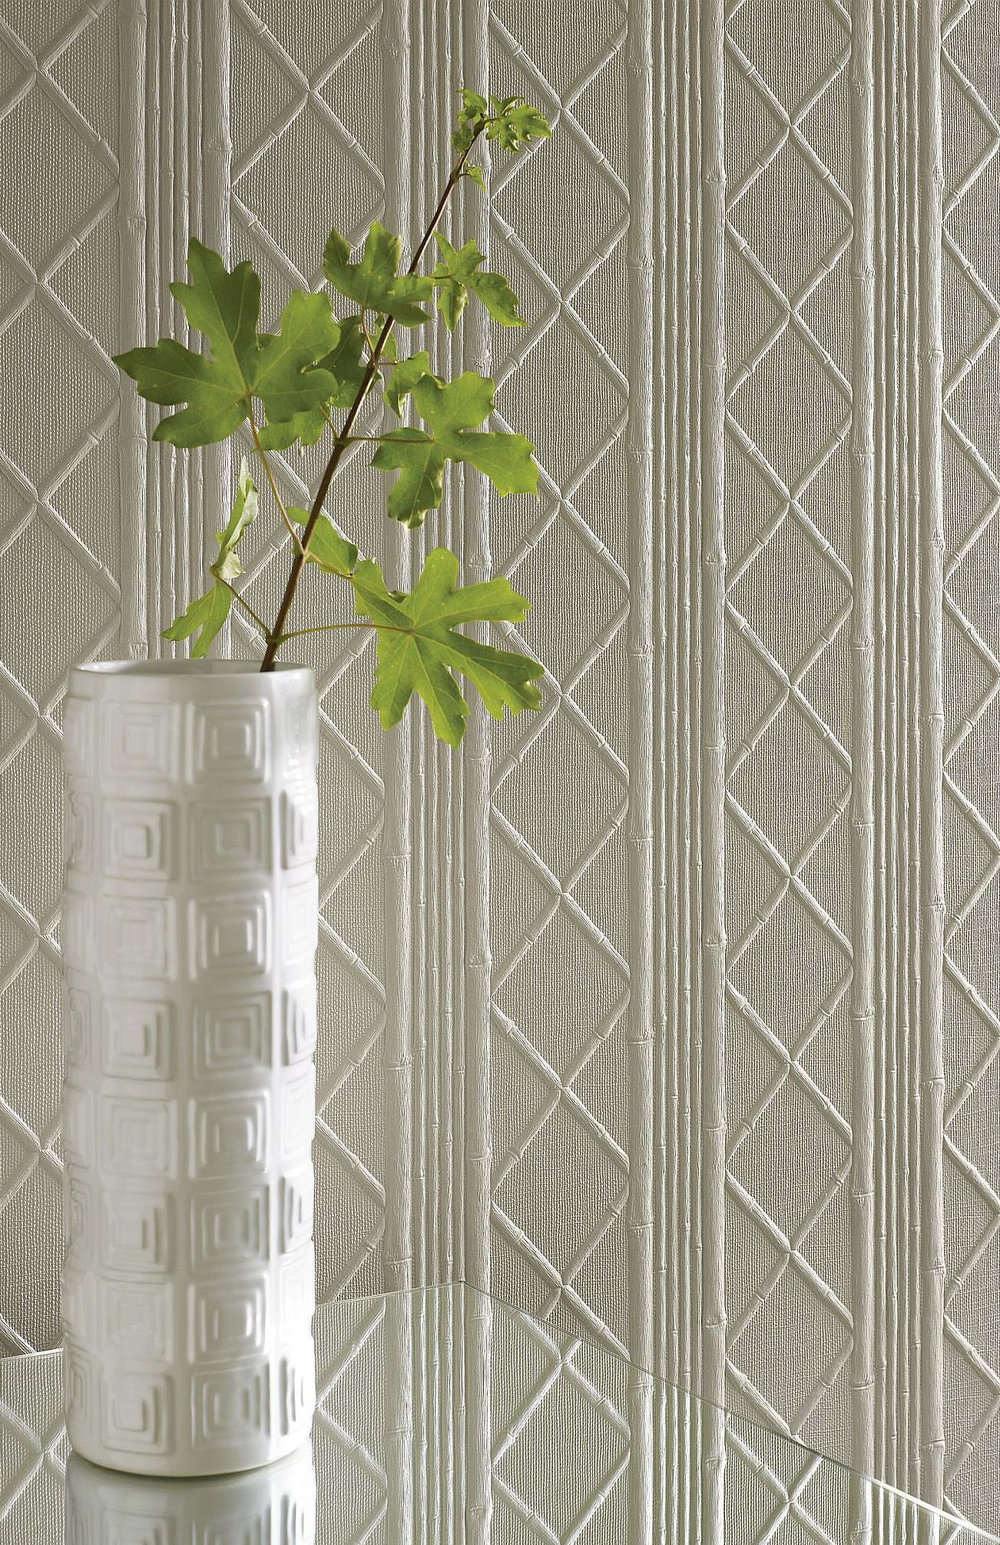 Cane Wallpaper - Paintable - by Lincrusta